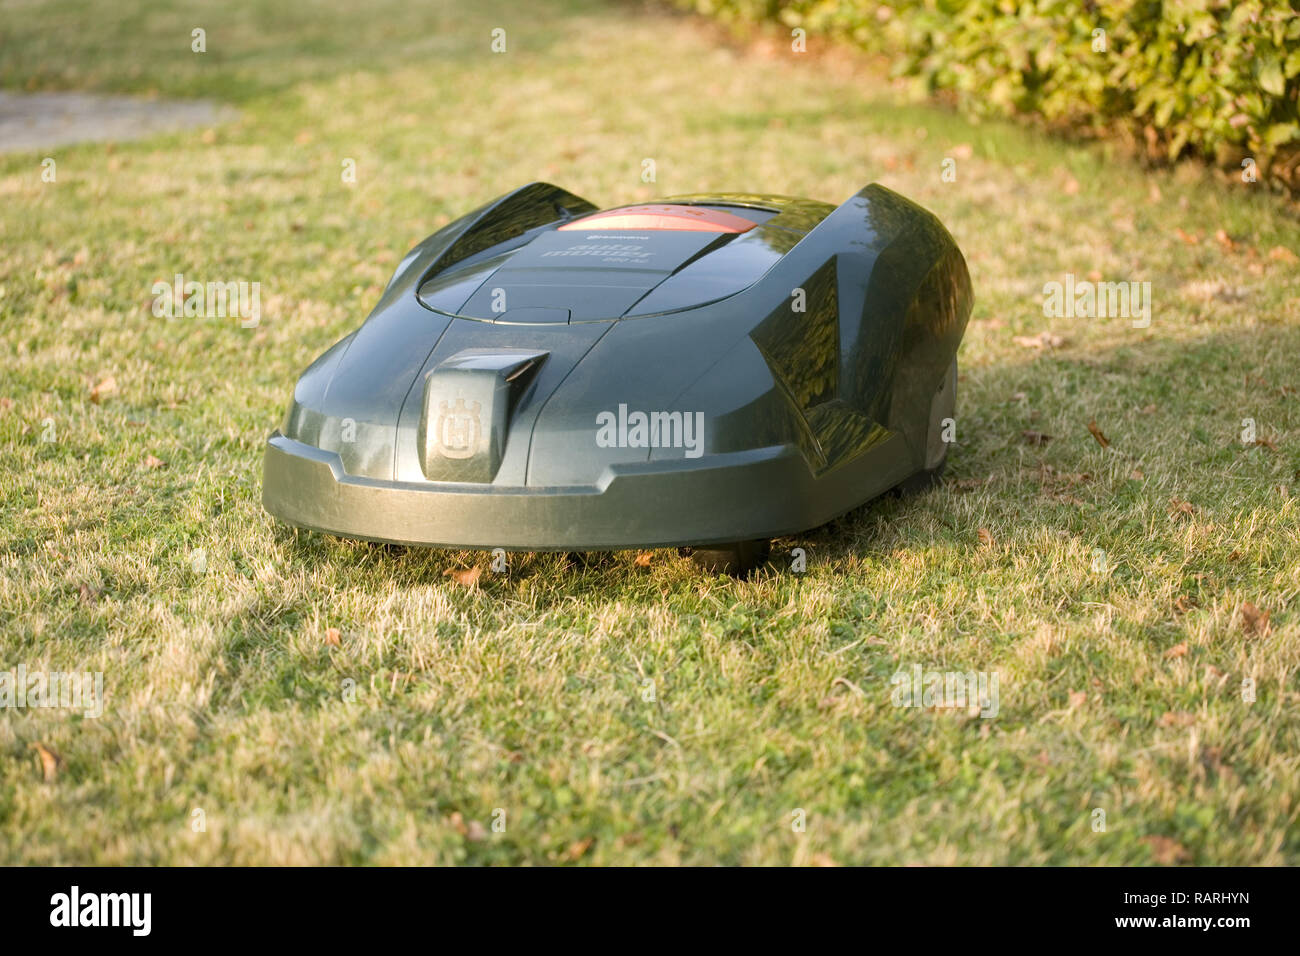 Automatic robot lawn mower cutting grass and heading towards camera - Stock Image